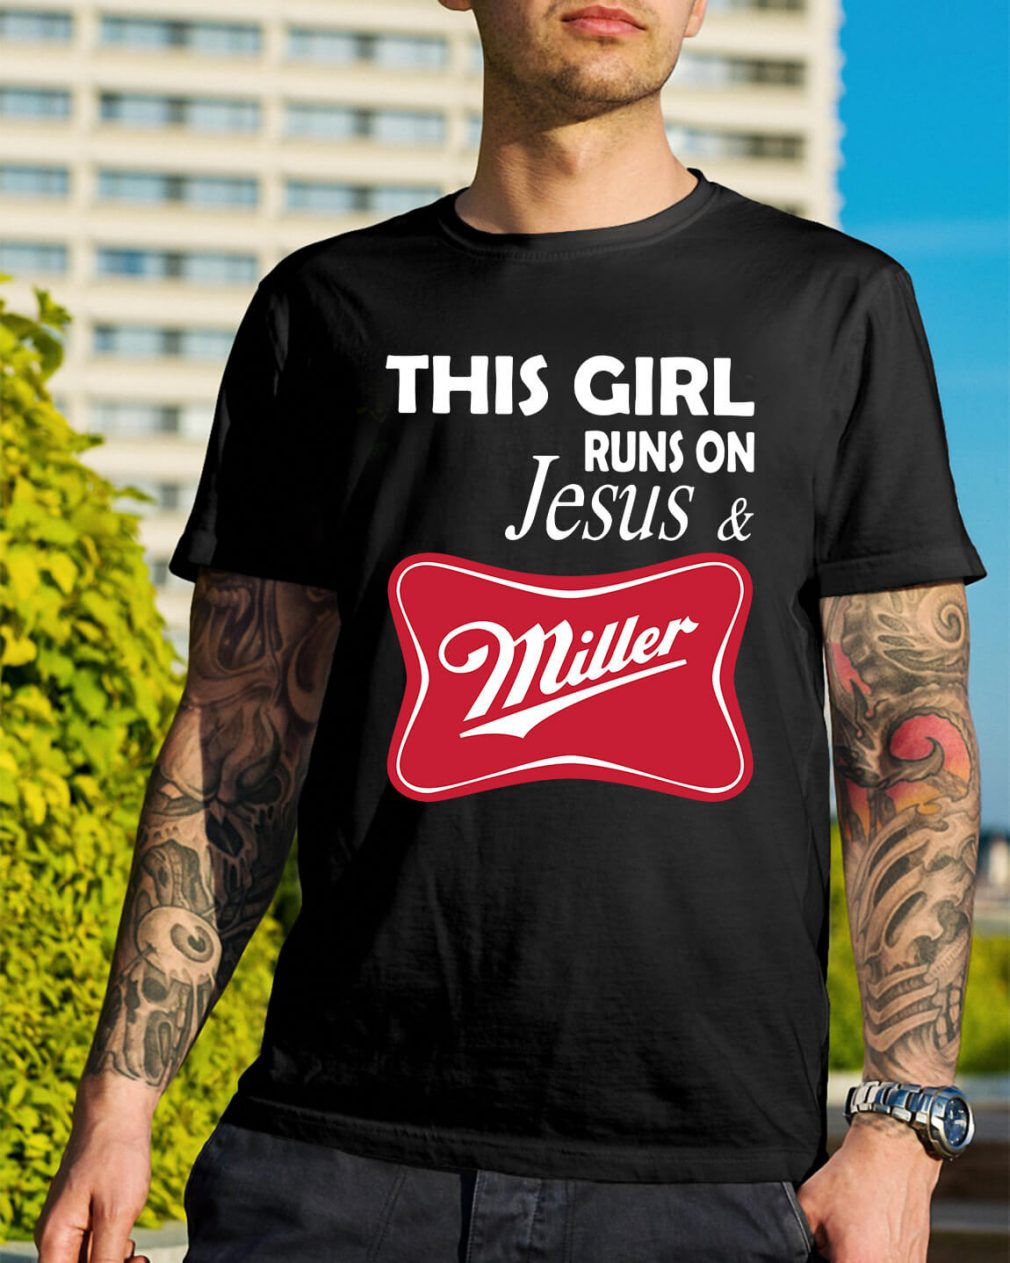 This girl runs on Jesus and Miller shirt